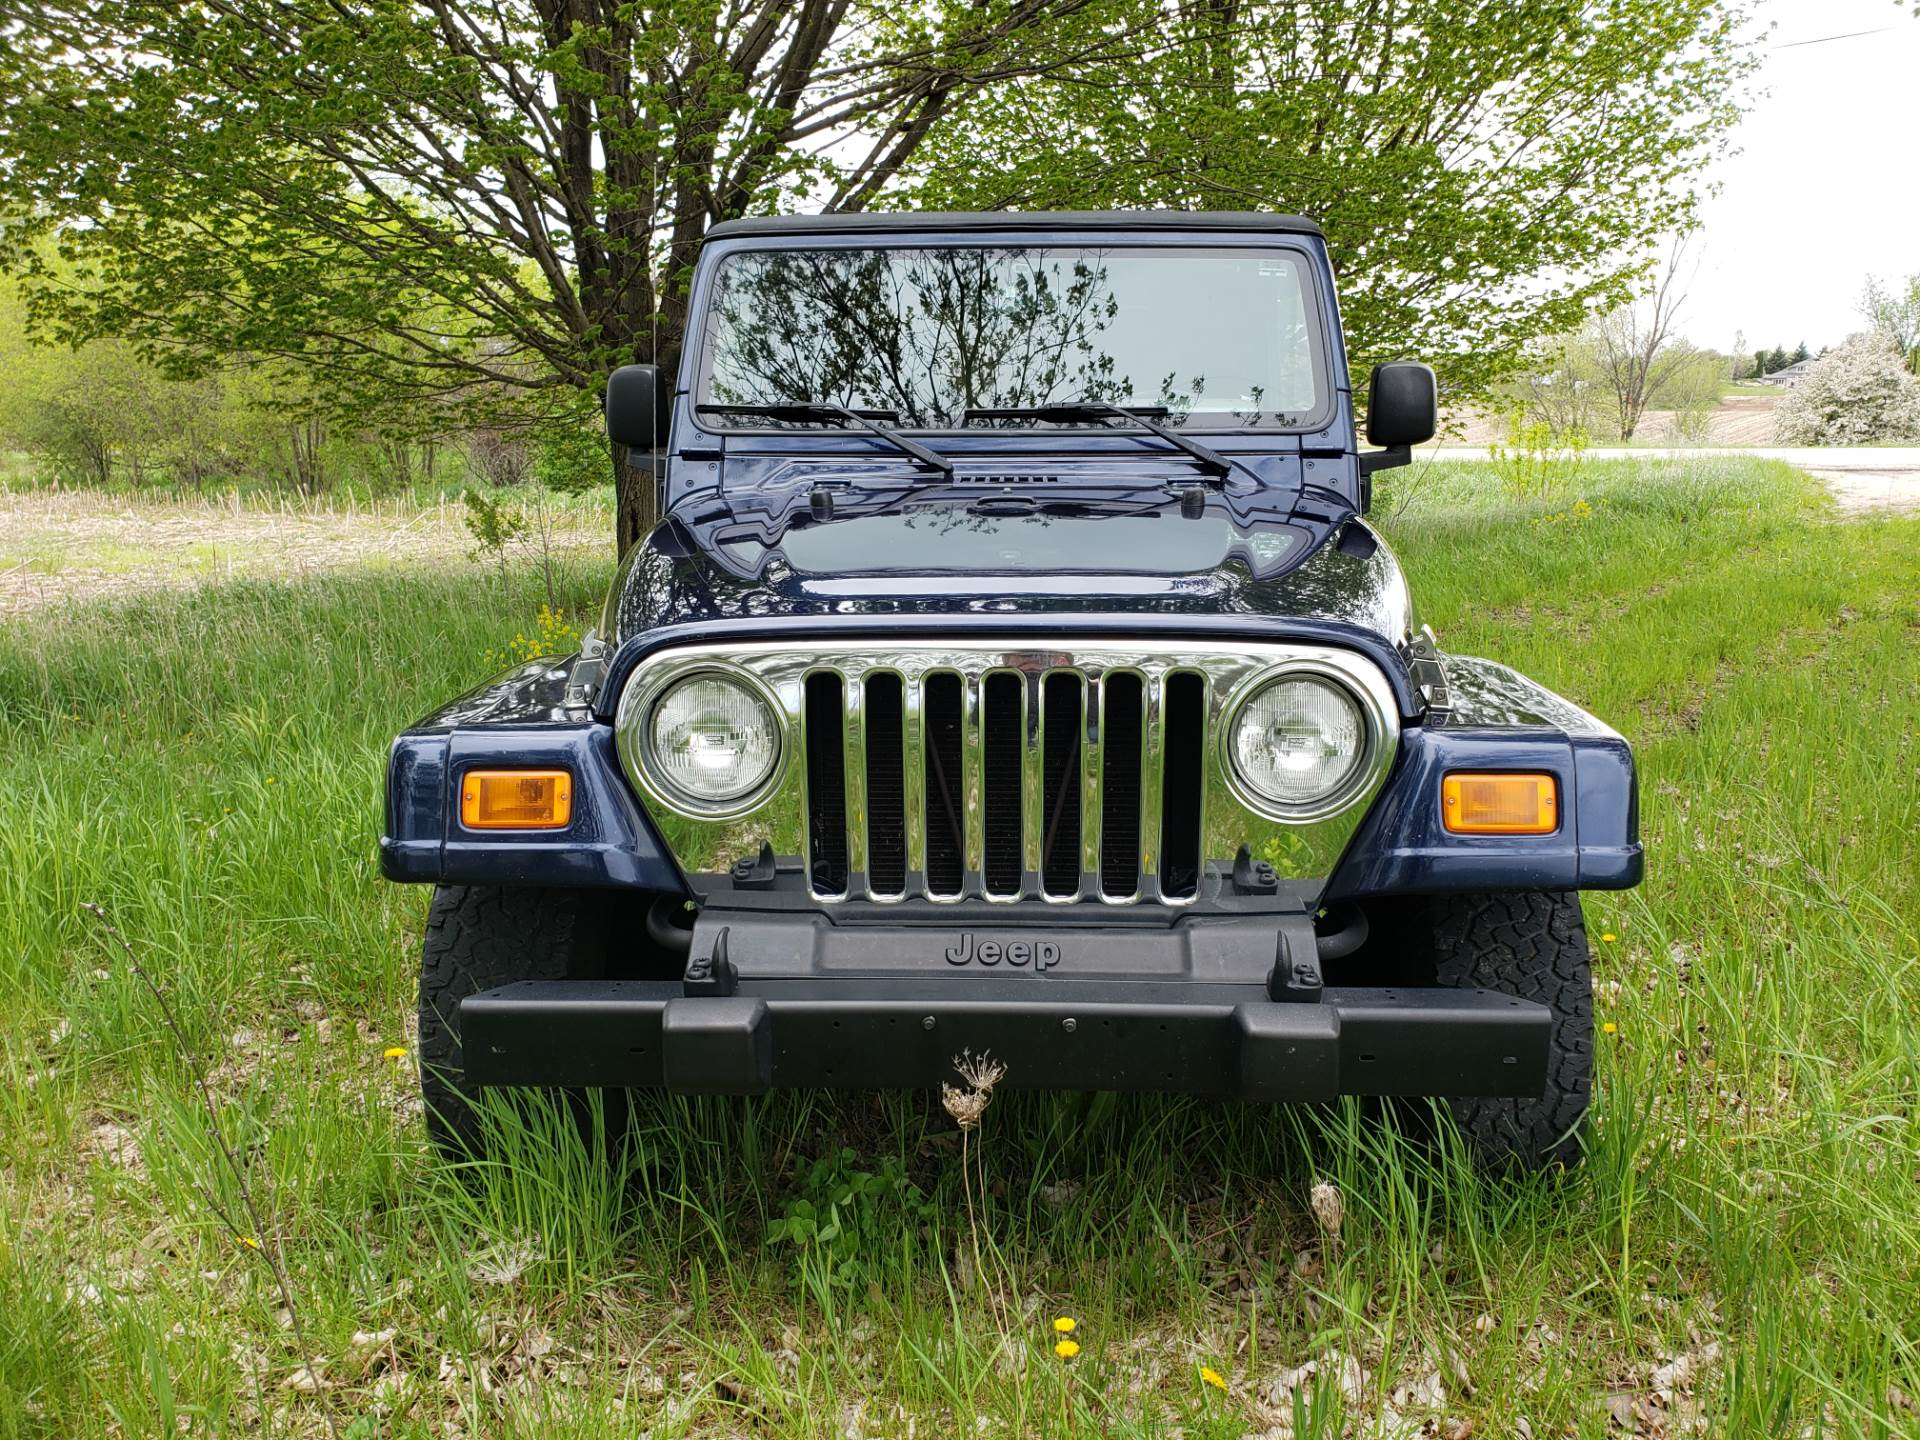 2006 Jeep Wrangler Unlimited 2dr SUV 4WD in Big Bend, Wisconsin - Photo 20